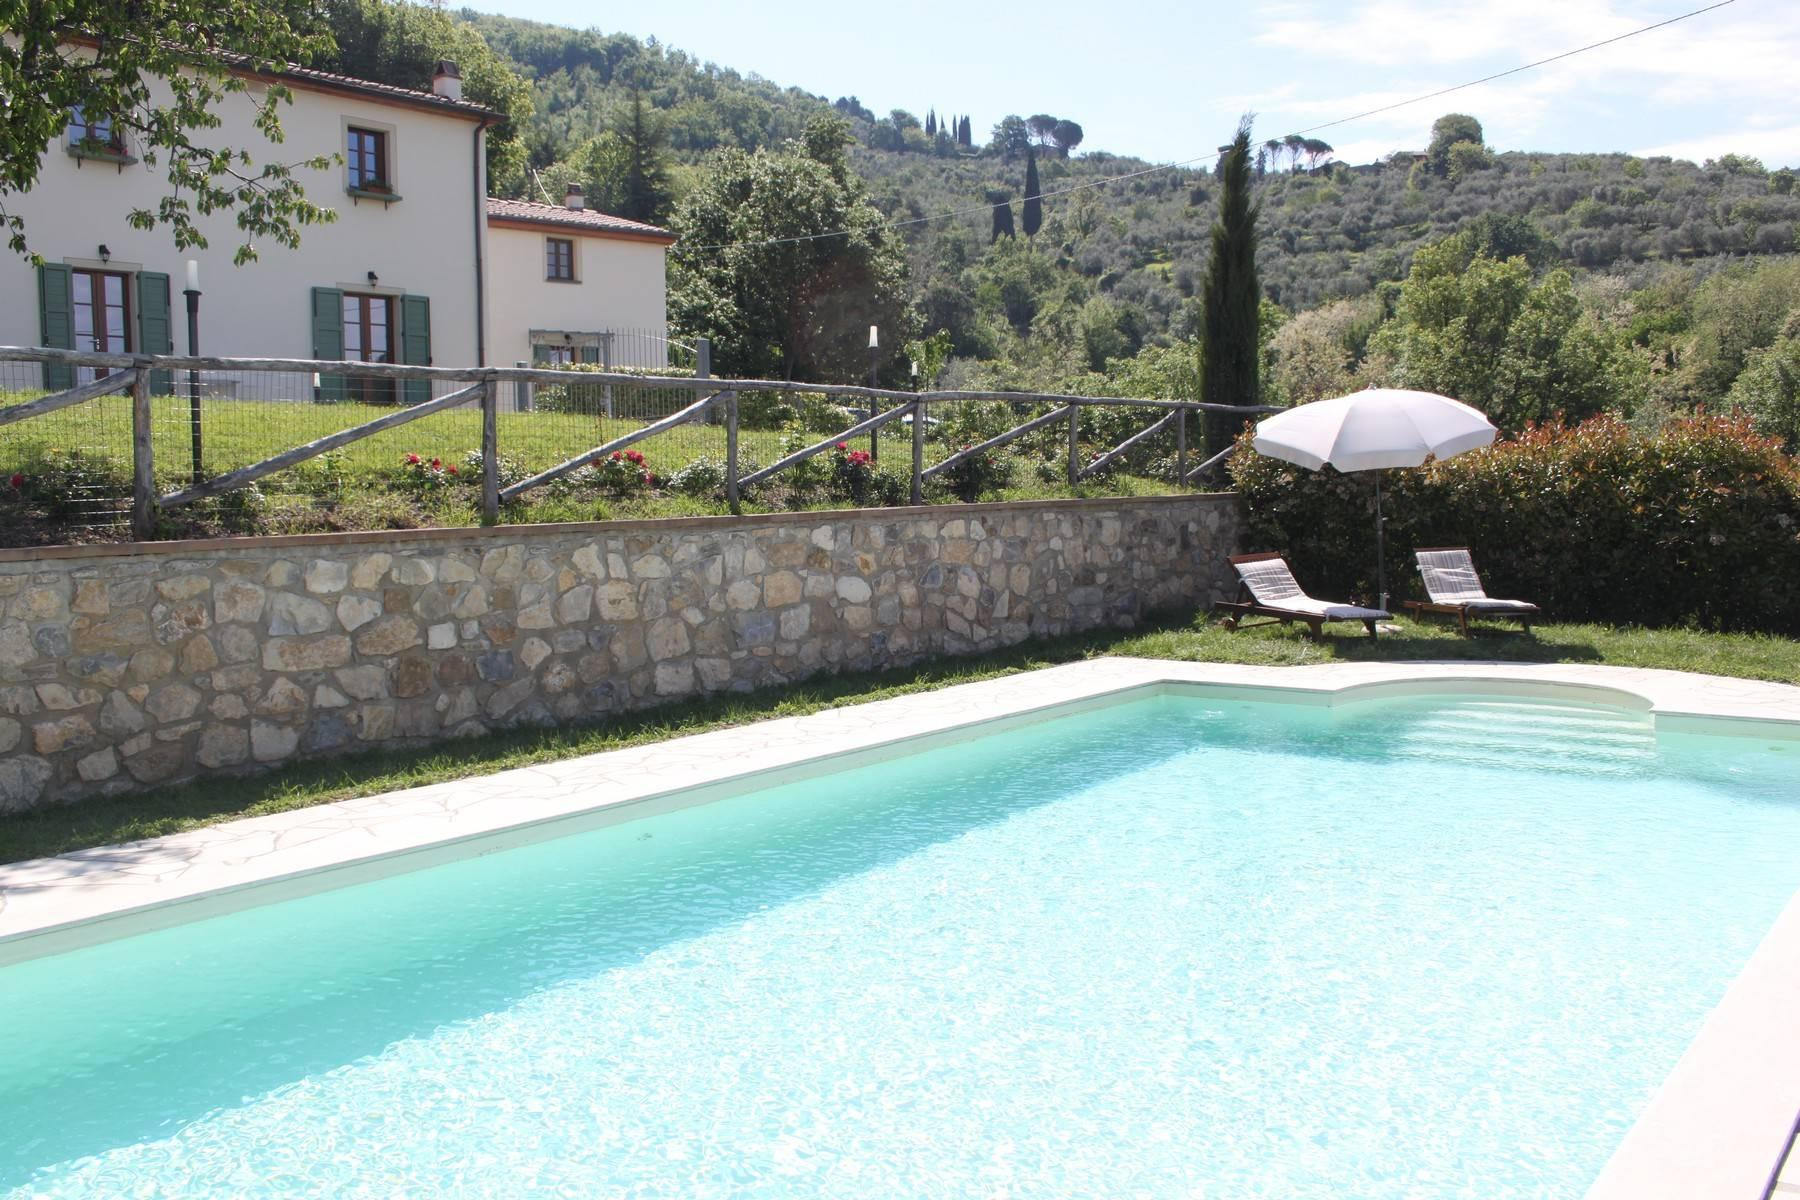 Delightful country house with pool on the tuscan hills - 1